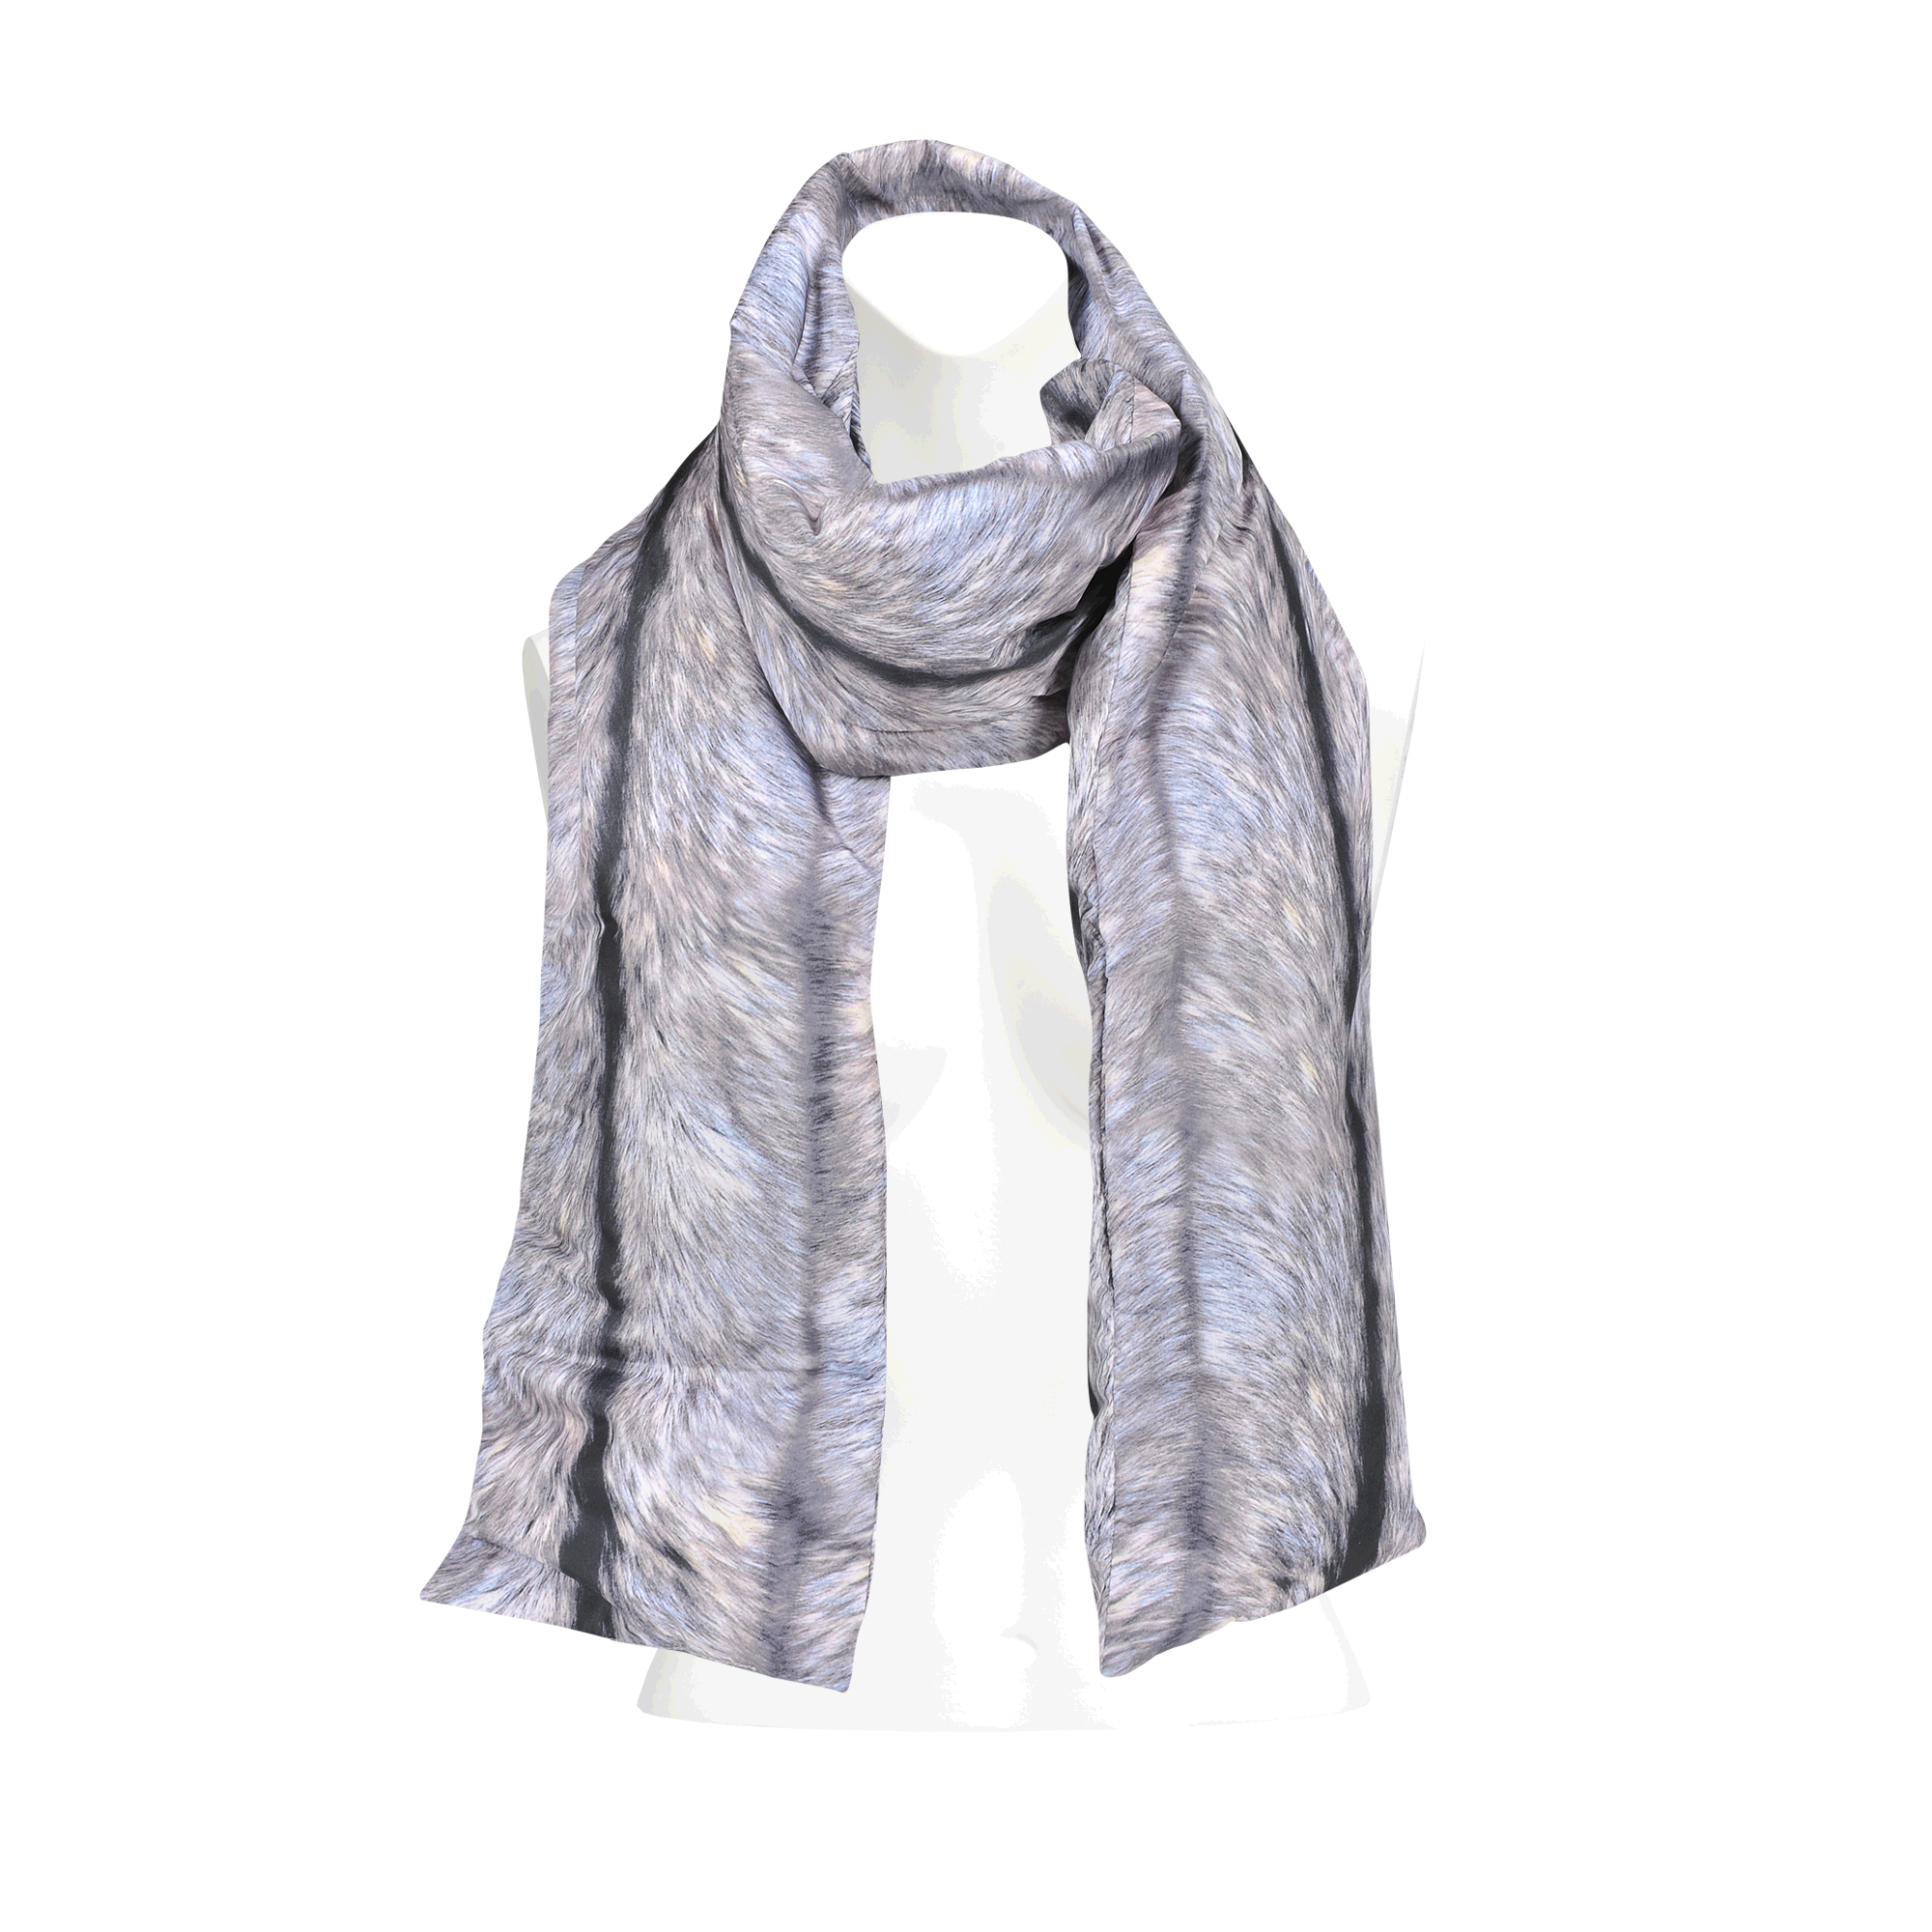 Mm6 by maison martin margiela optic illusion scarf in gray for Mm6 maison margiela